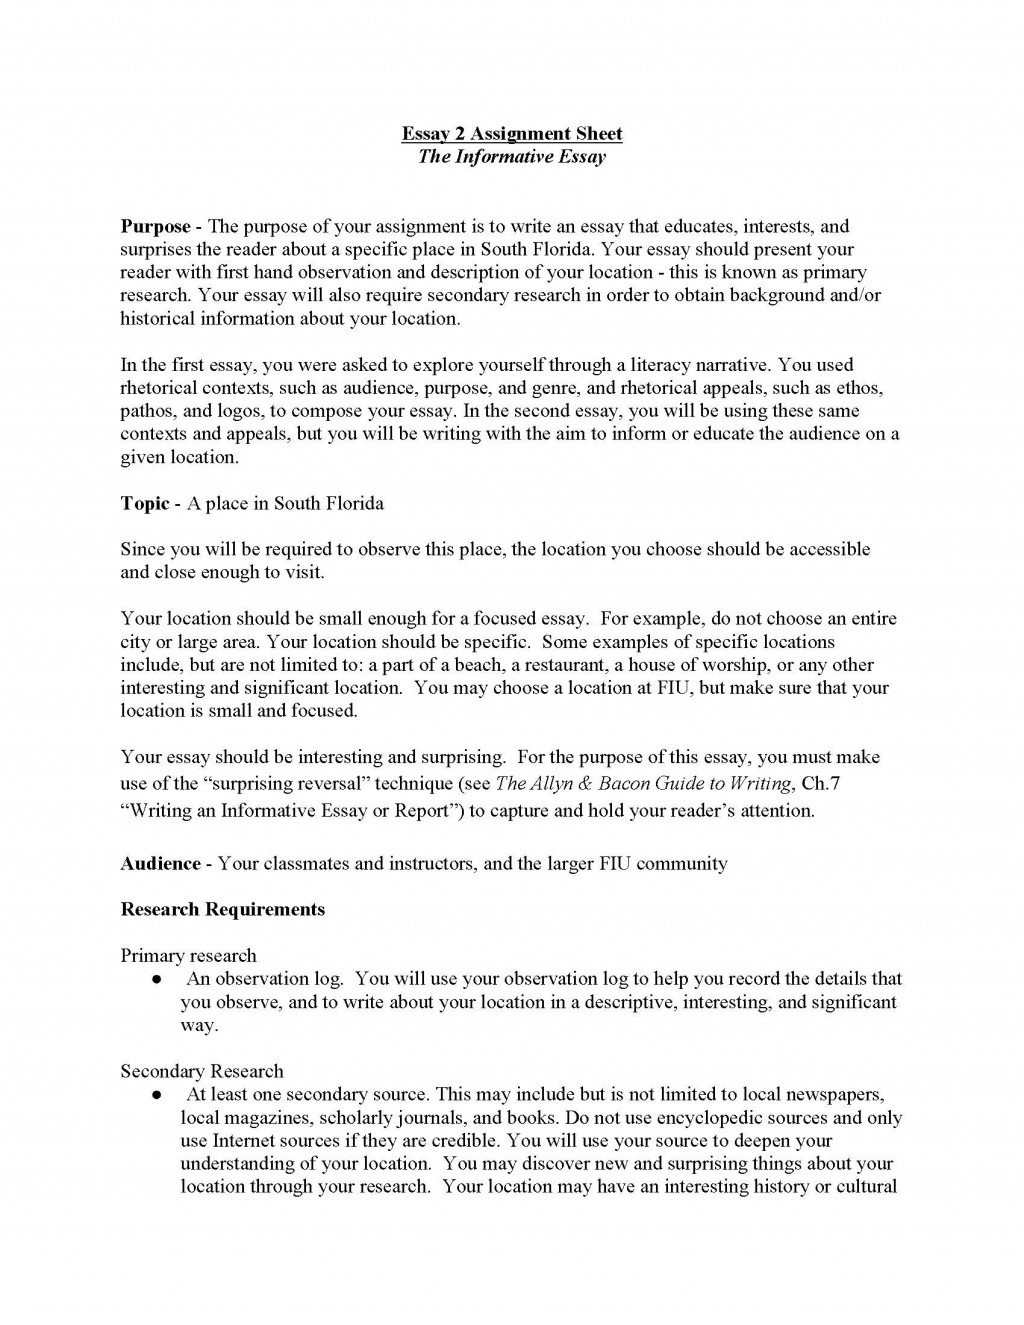 003 Informative Essay Unit Assignment Page 1 Ideas Wondrous Prompts Writing Topics 4th Grade Expository Middle School Large